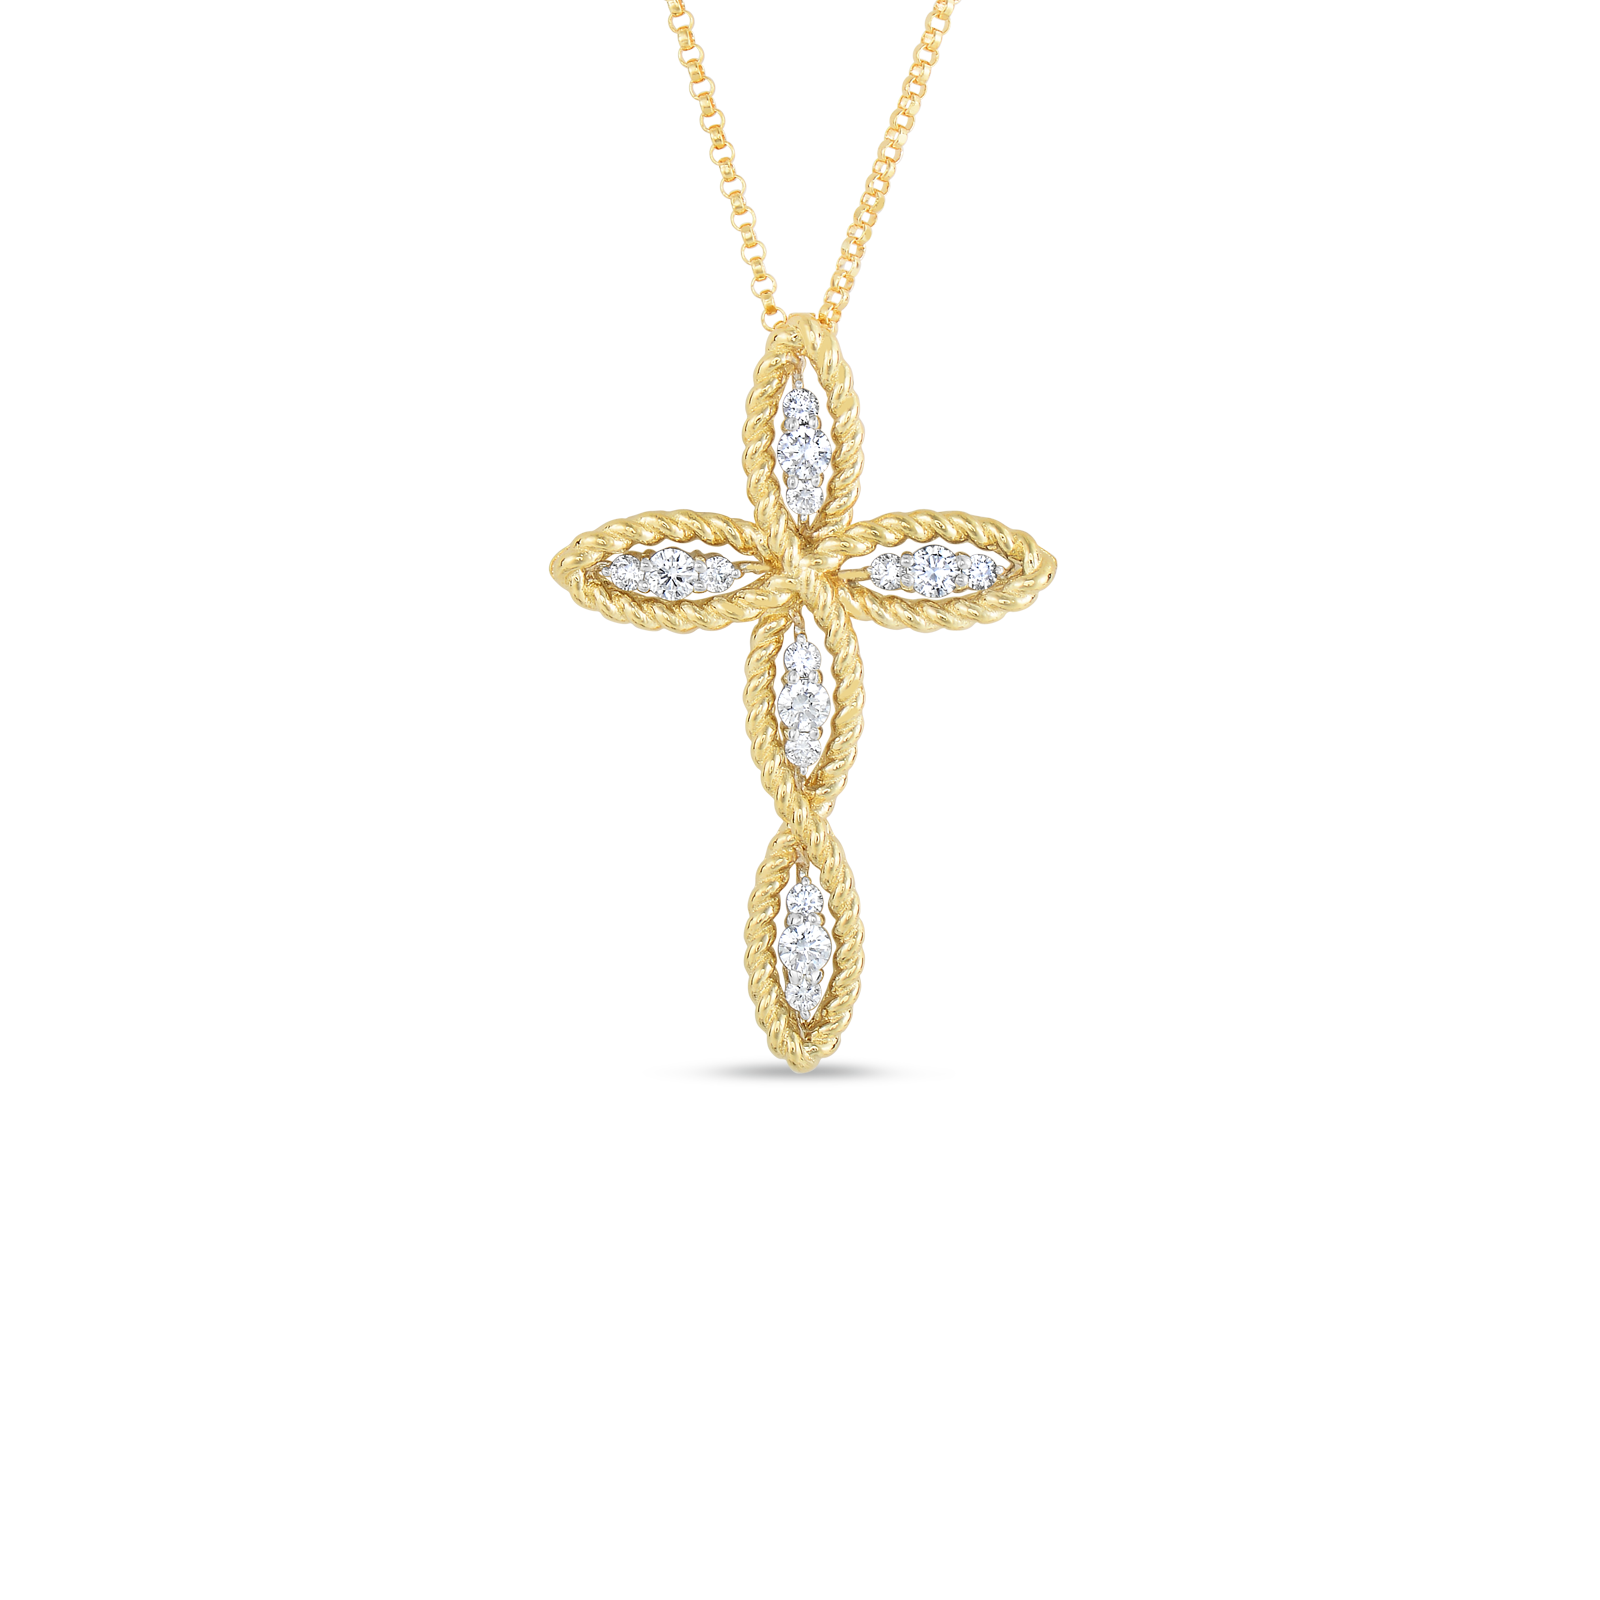 Gold cross necklace png. Buy pendant with diamonds